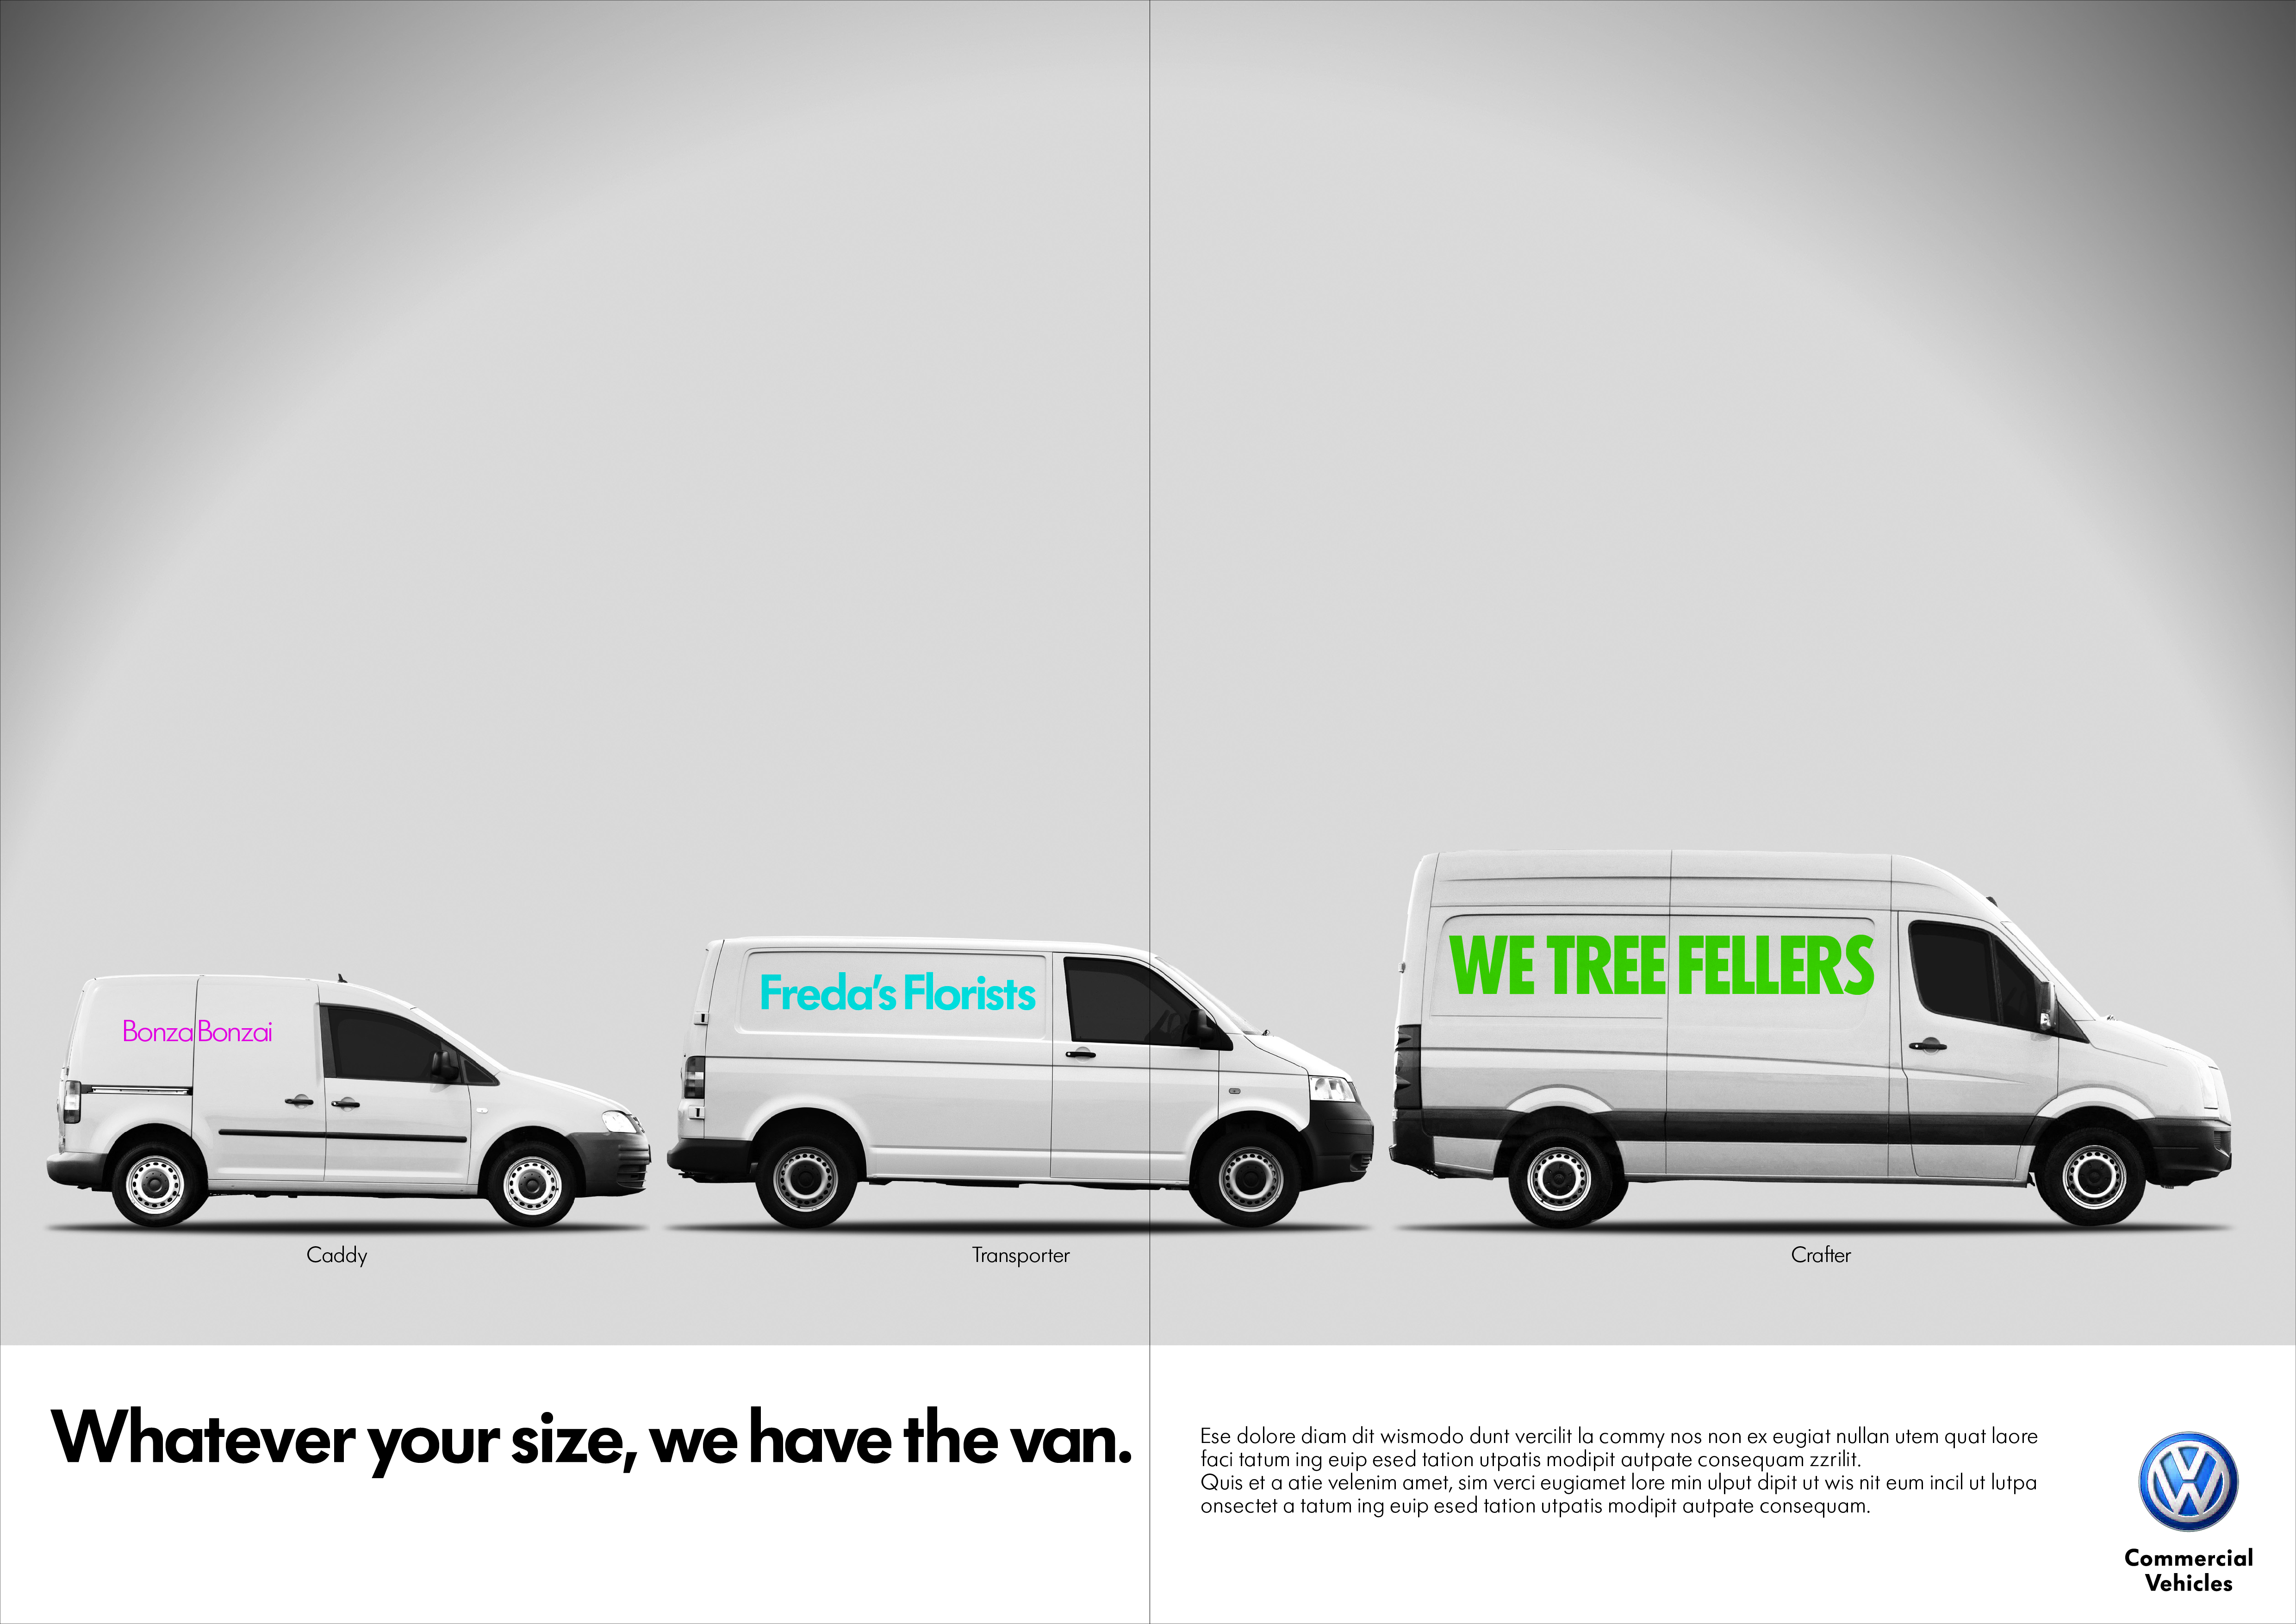 'Whatever your size', Volkswagen CV, DHM-01